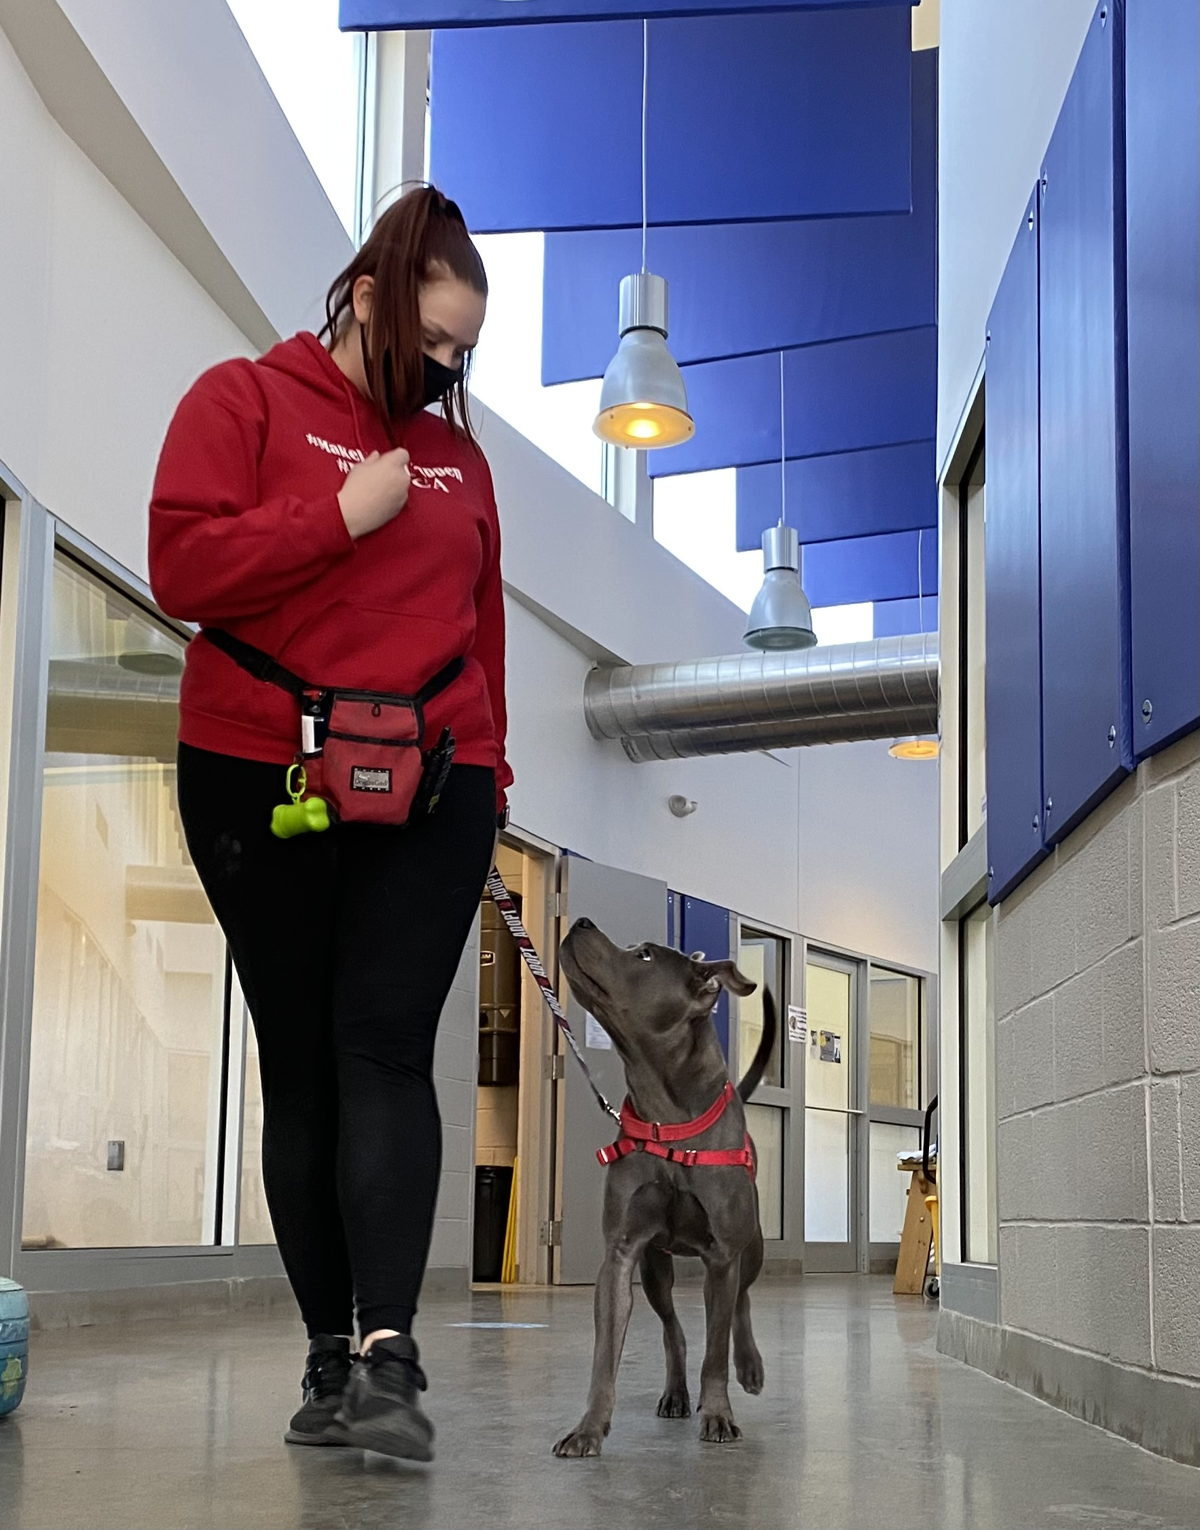 """Meloccaro says the change was instantaneous. """"Suddenly our biggest, most anxious dogs were walking calmly down the hall without fear,"""" she said. """"The difference was absolutely incredible."""""""